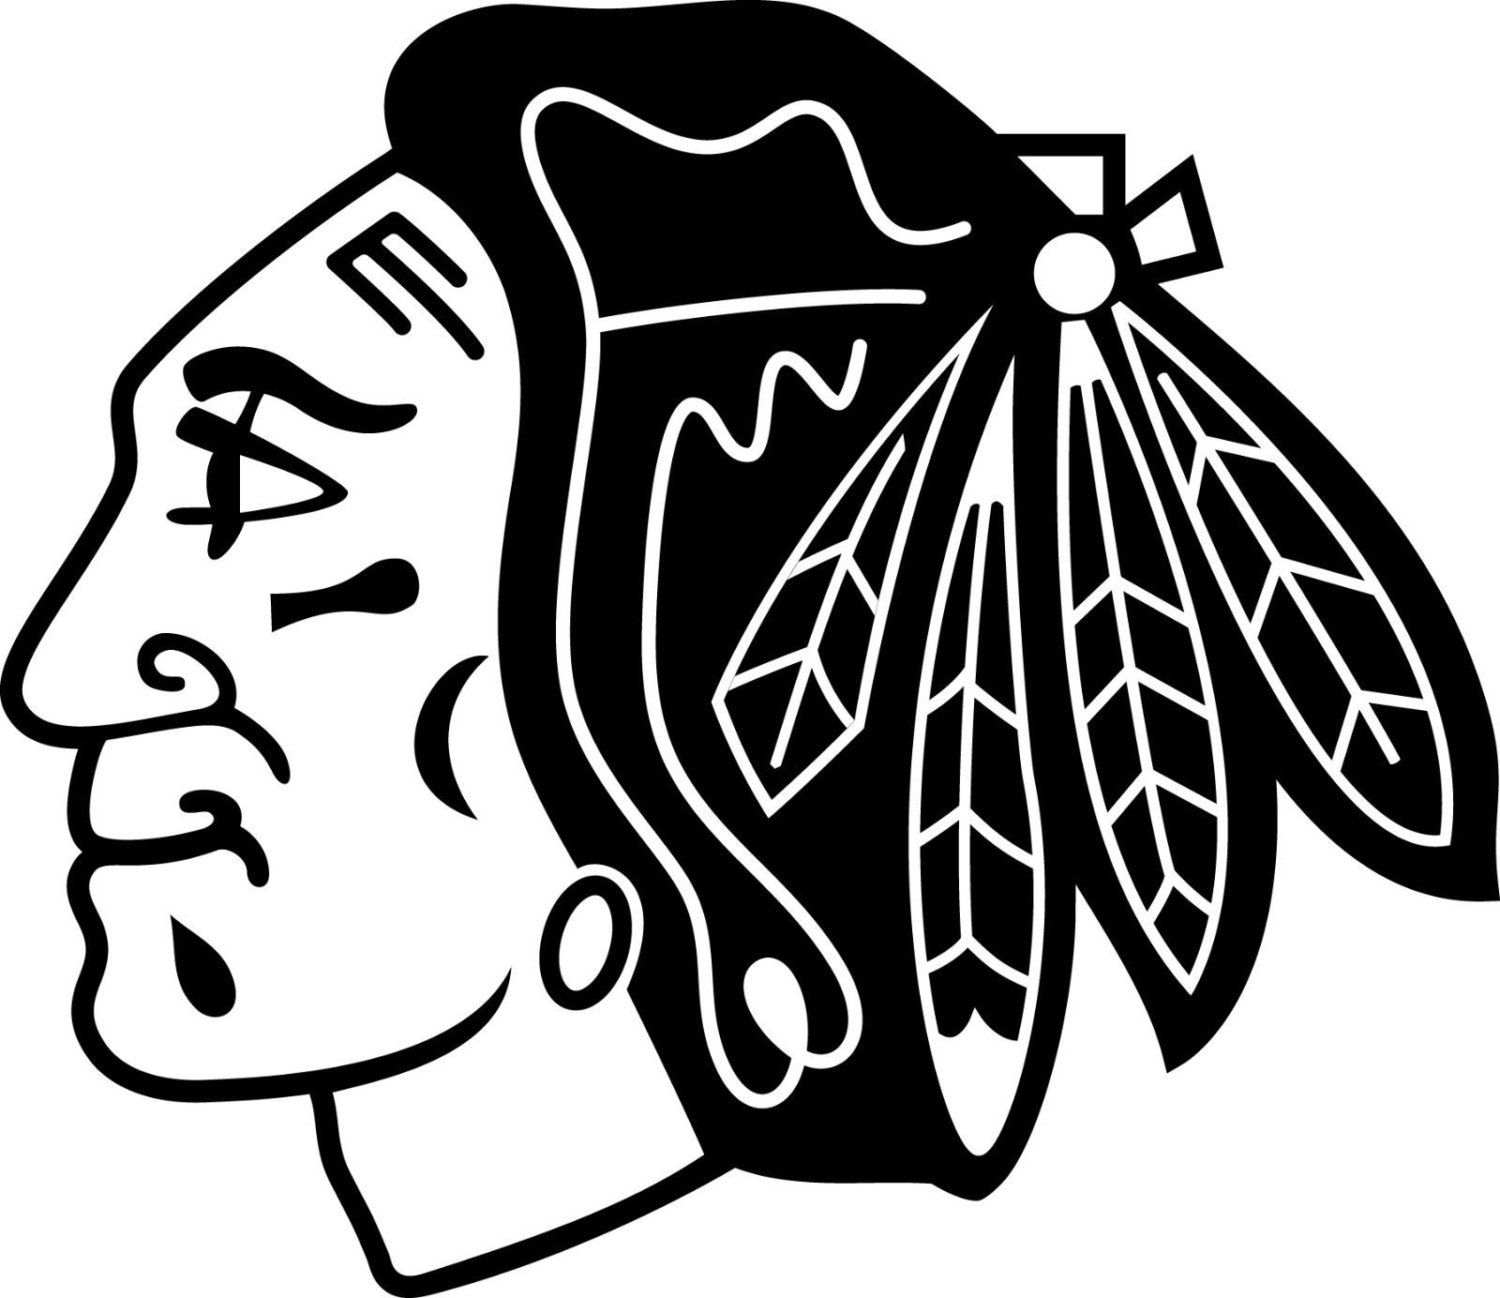 Chicago Blackhawks Logo Window Wall Decal Vinyl Car Sticker Chicago Blackhawks Logo Vinyl Car Stickers Coloring Pages